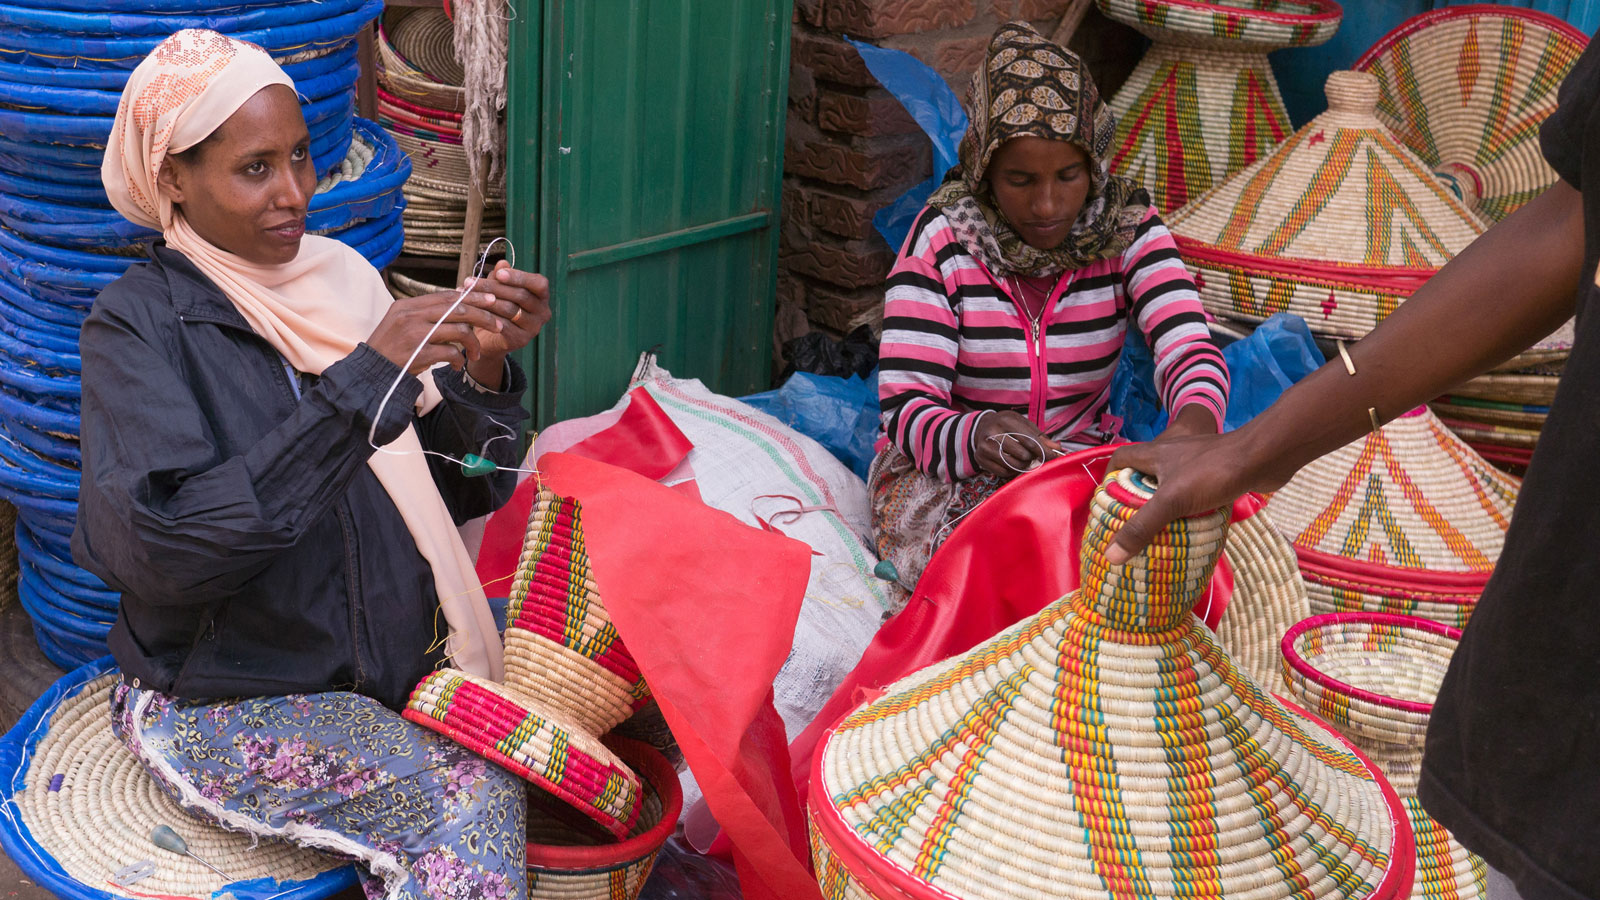 Addis Ababa: 10 best things to do in Ethiopia's capital